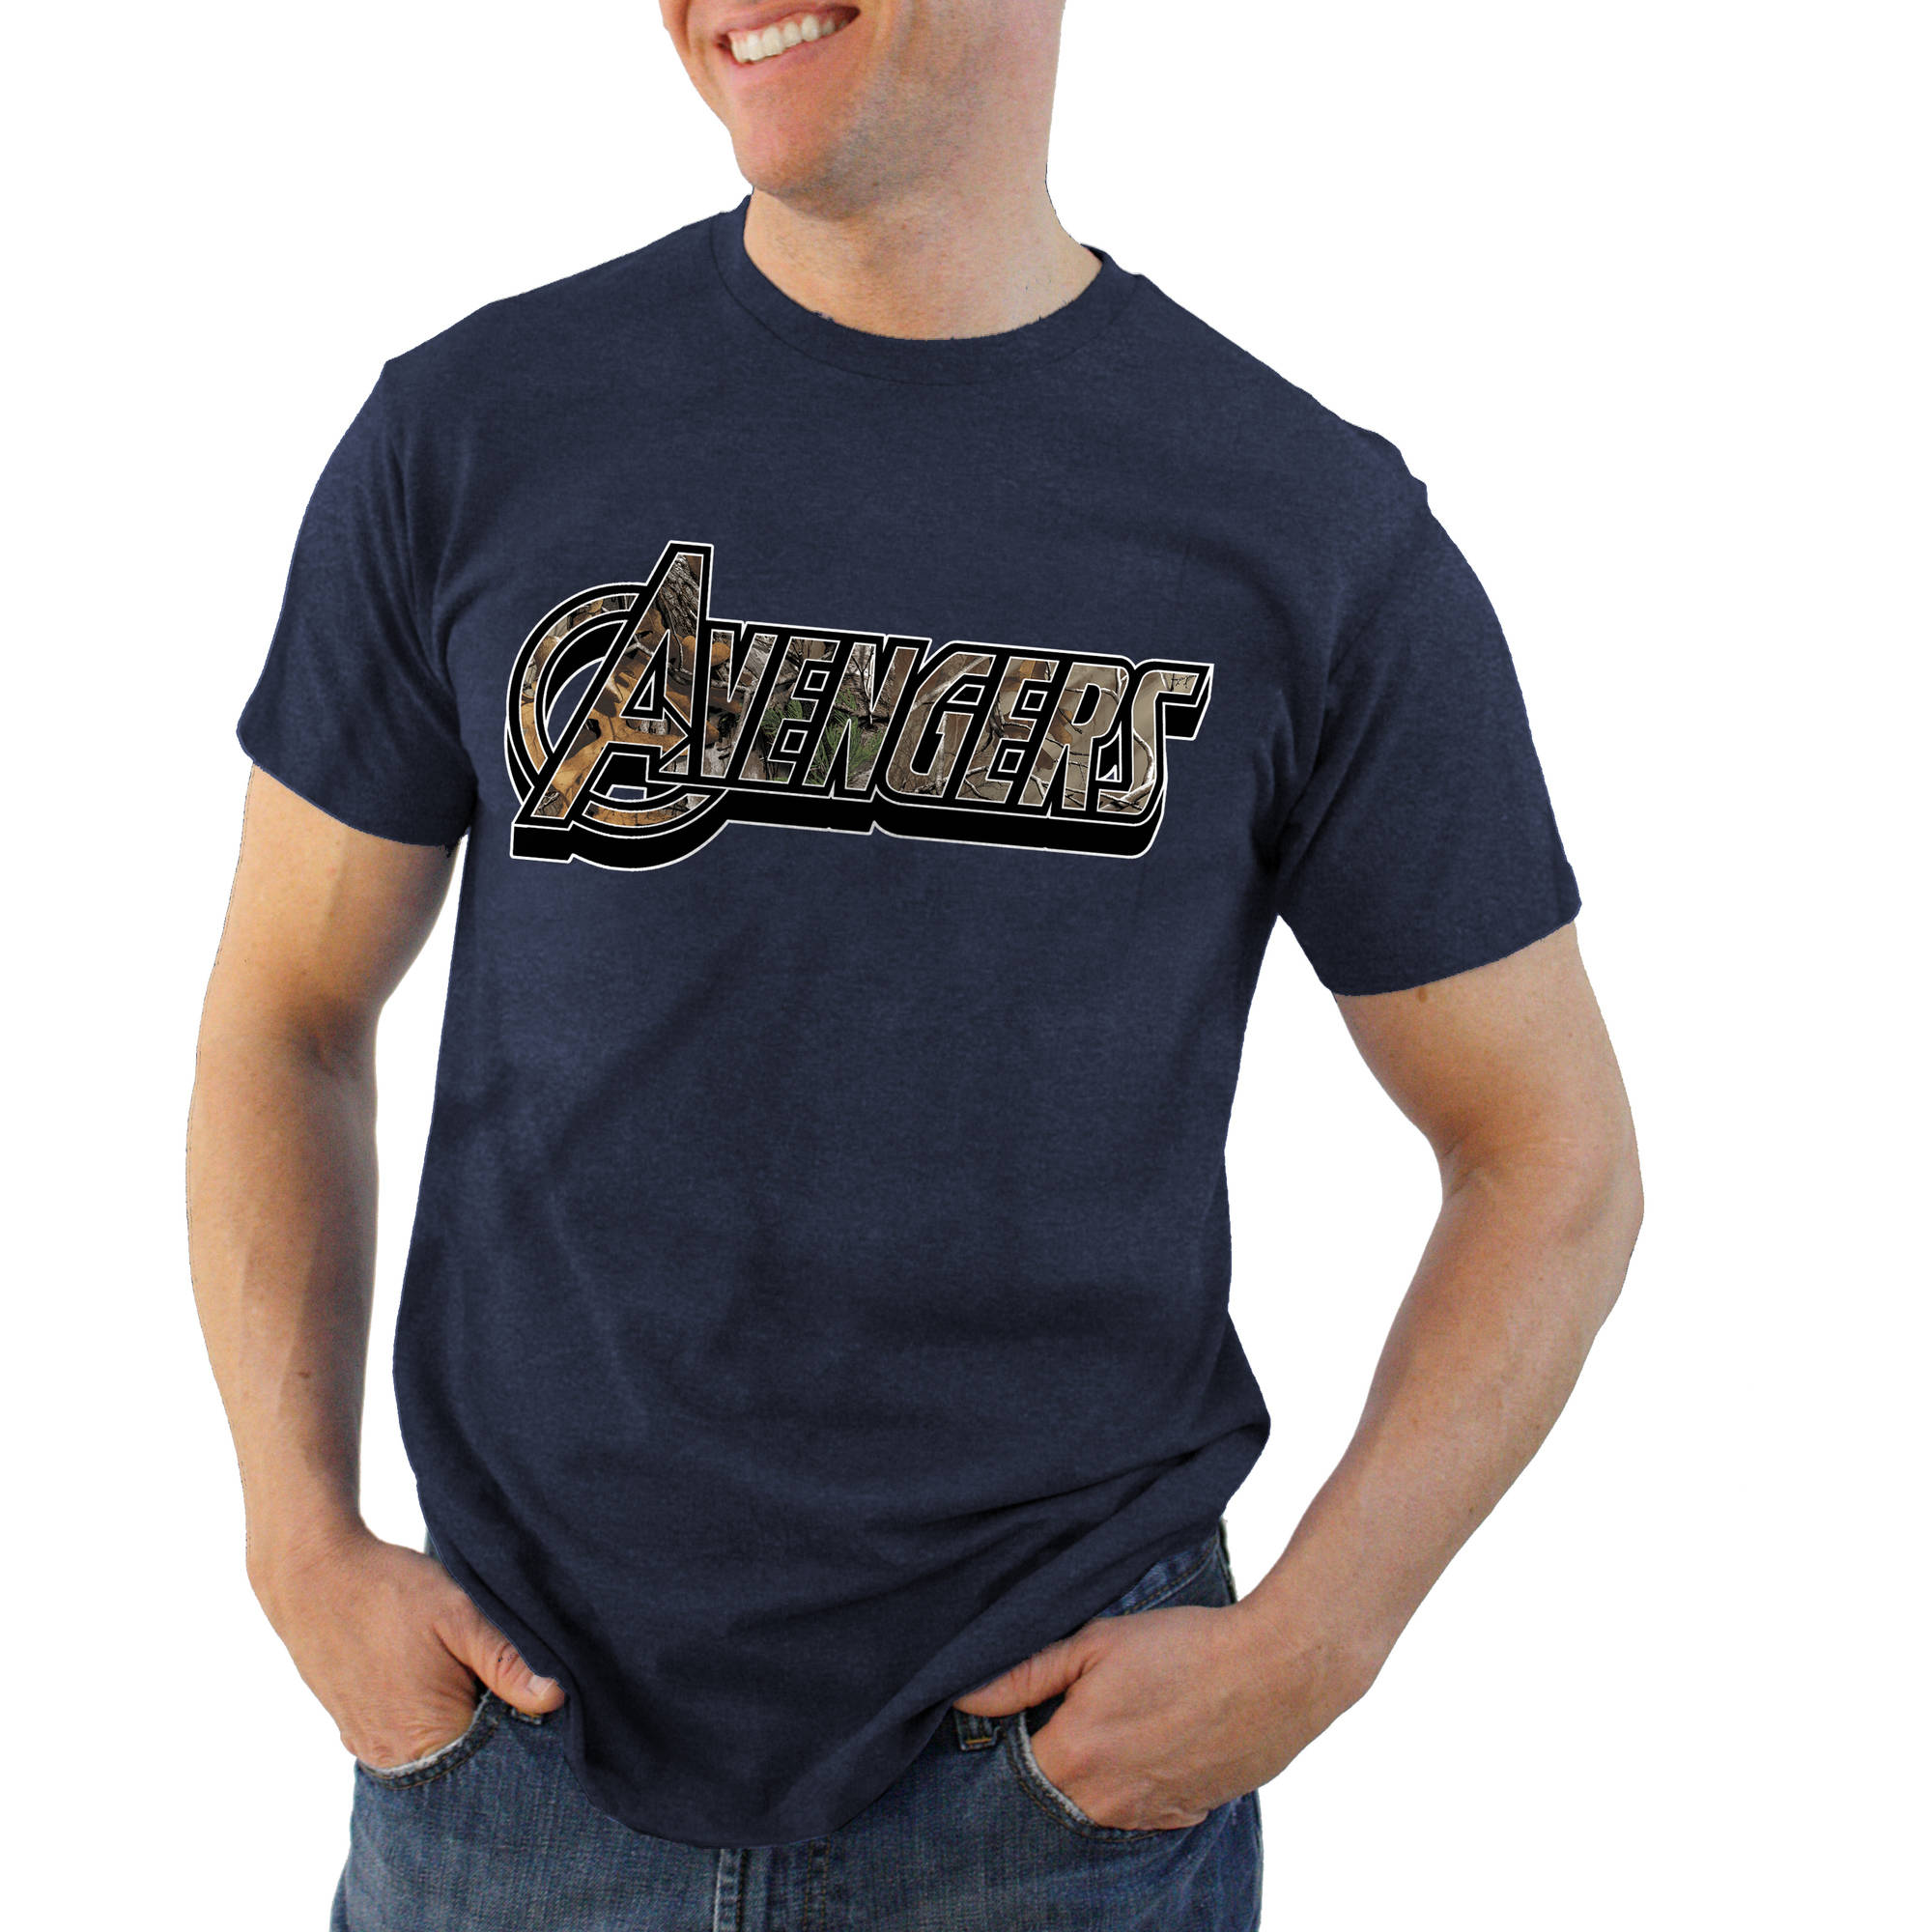 Avengers Filled Title Realtree Logo Men's Graphic Tee